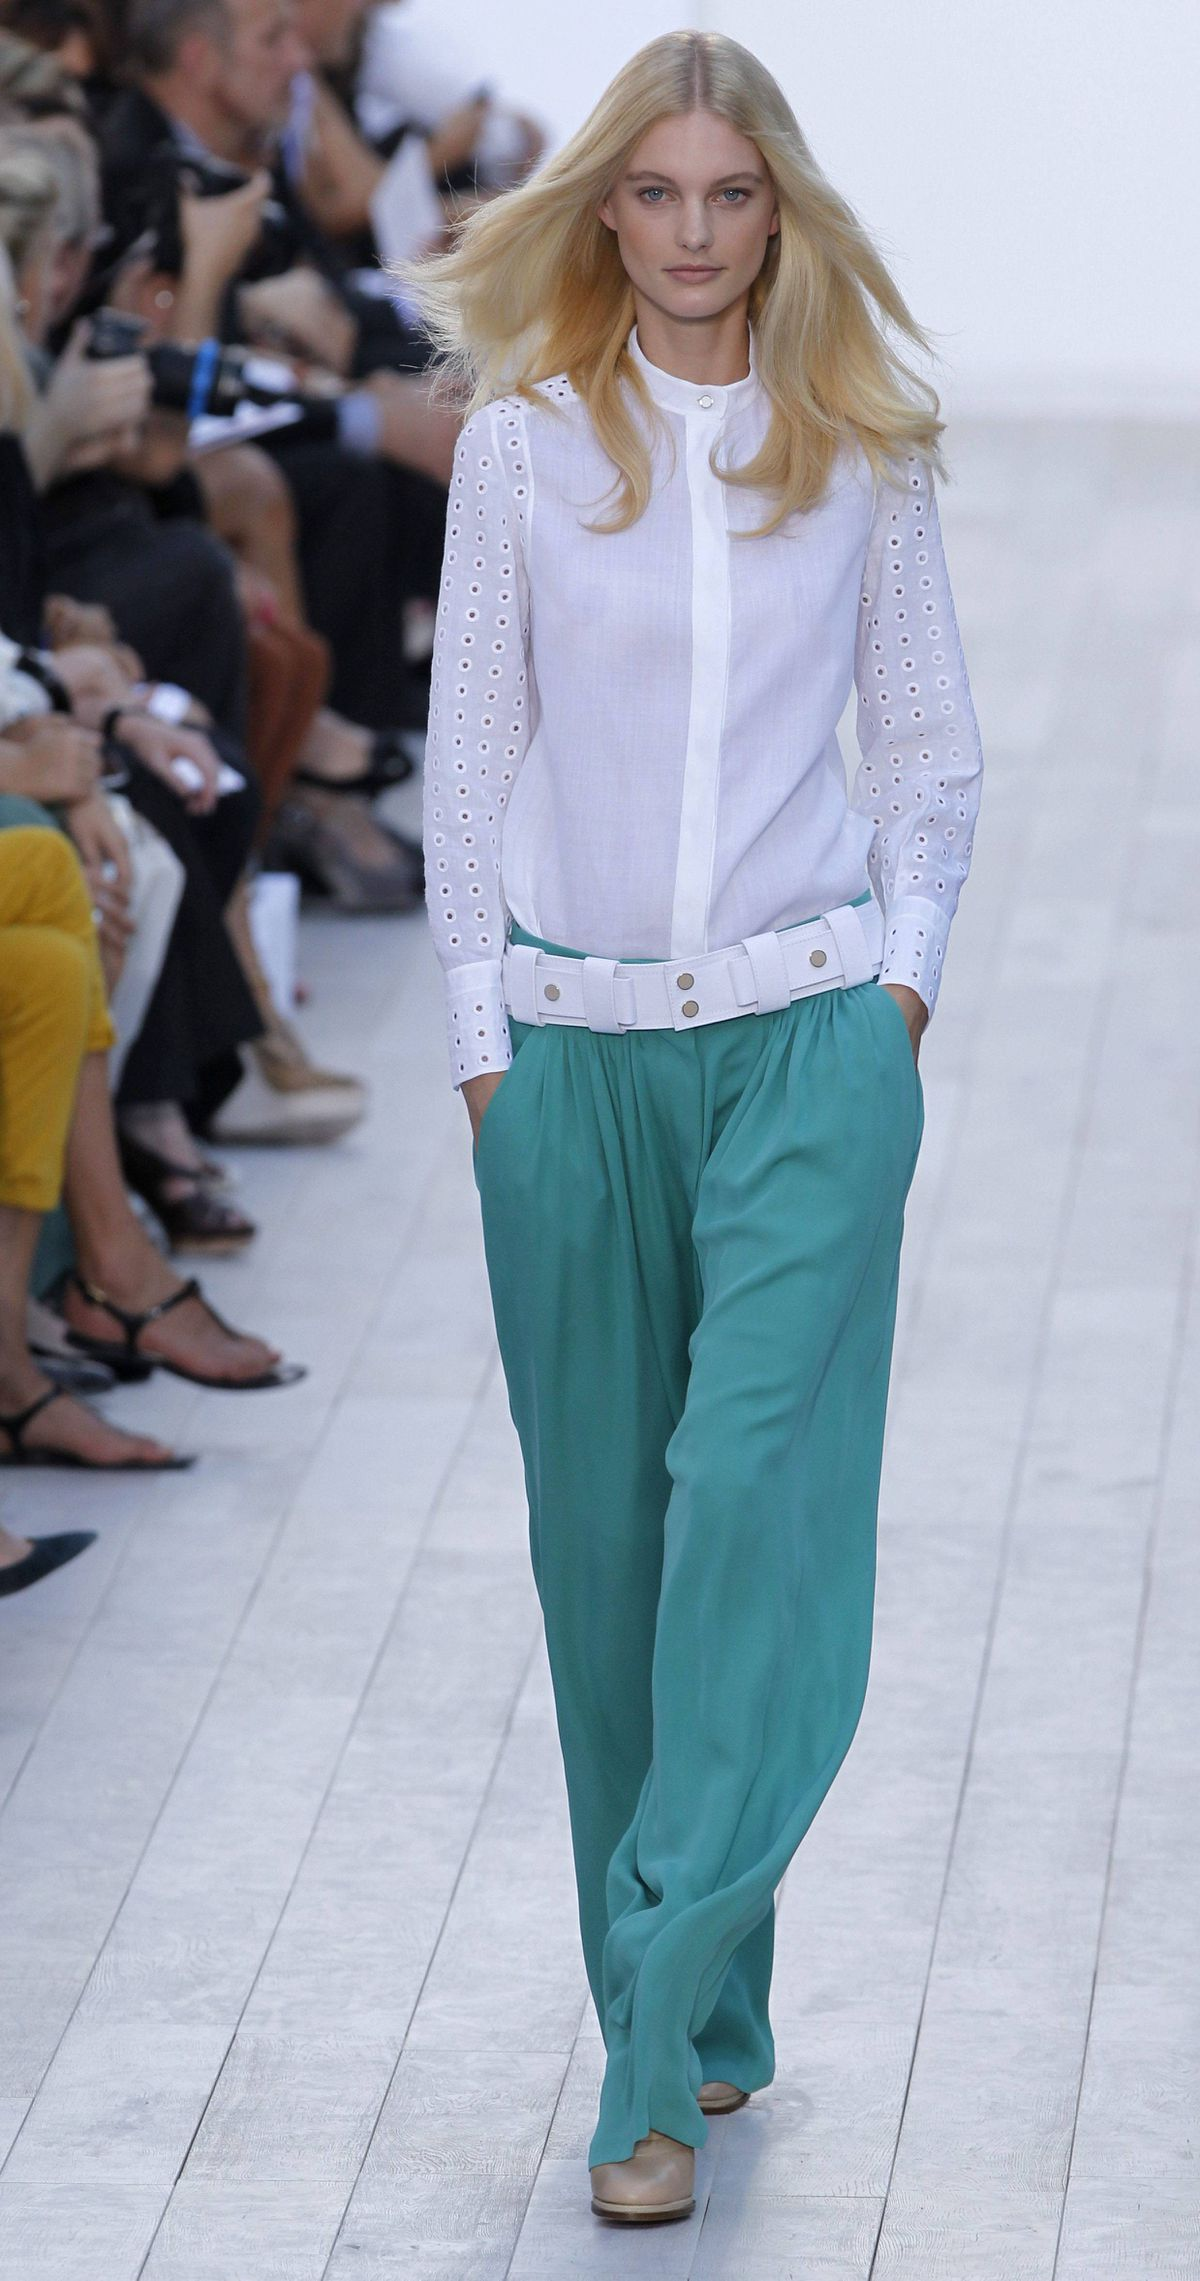 As if not already obvious, a looser pant is emerging as one of the strongest statements for spring 2012. You need only observe the relaxed slouch of these sea green slacks to get the drift.